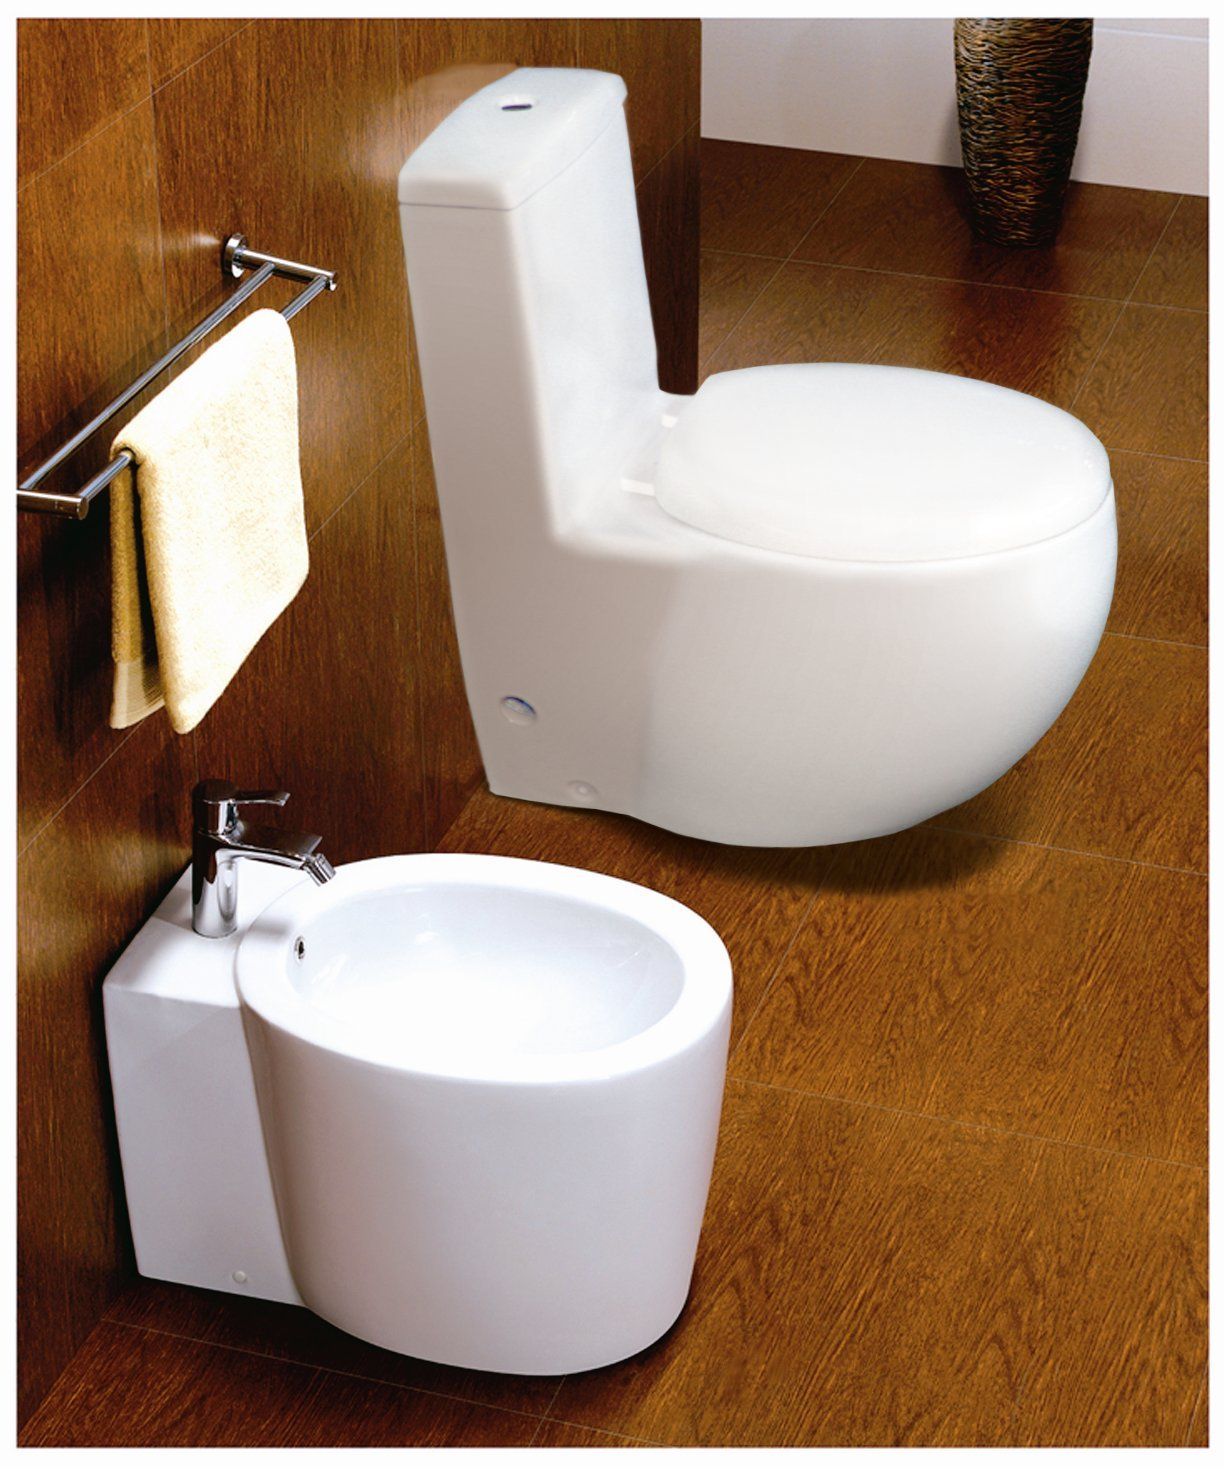 Euroto Luxury Toilet for Bathroom Toilet Bowls, Toilets, and Toilet Seats. Smart Toilet (Compact Elongated, Dual Flush(Siphonic)) by EUROTO (Image #5)